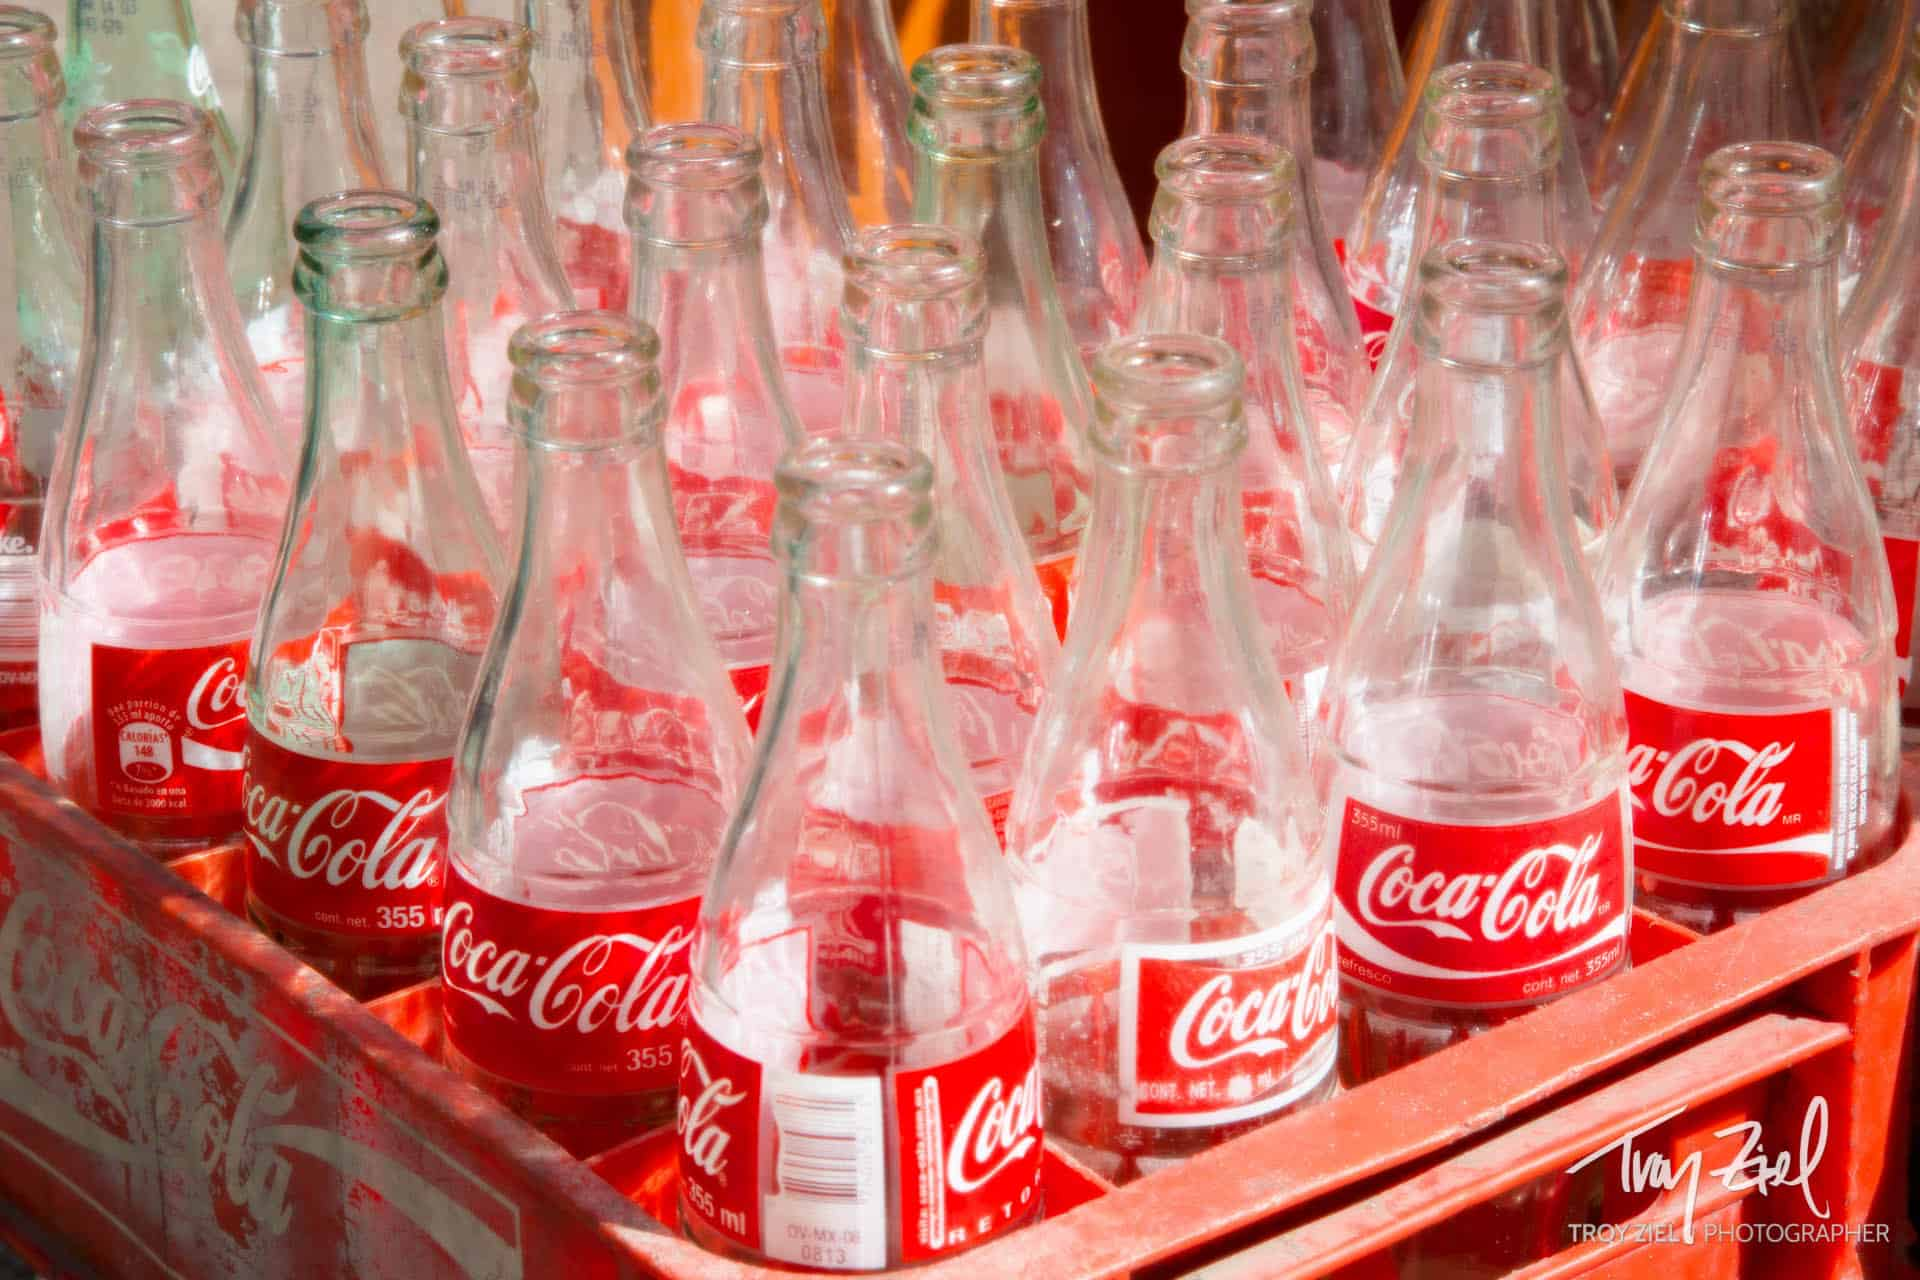 CocaColaBottles (1 of 1)